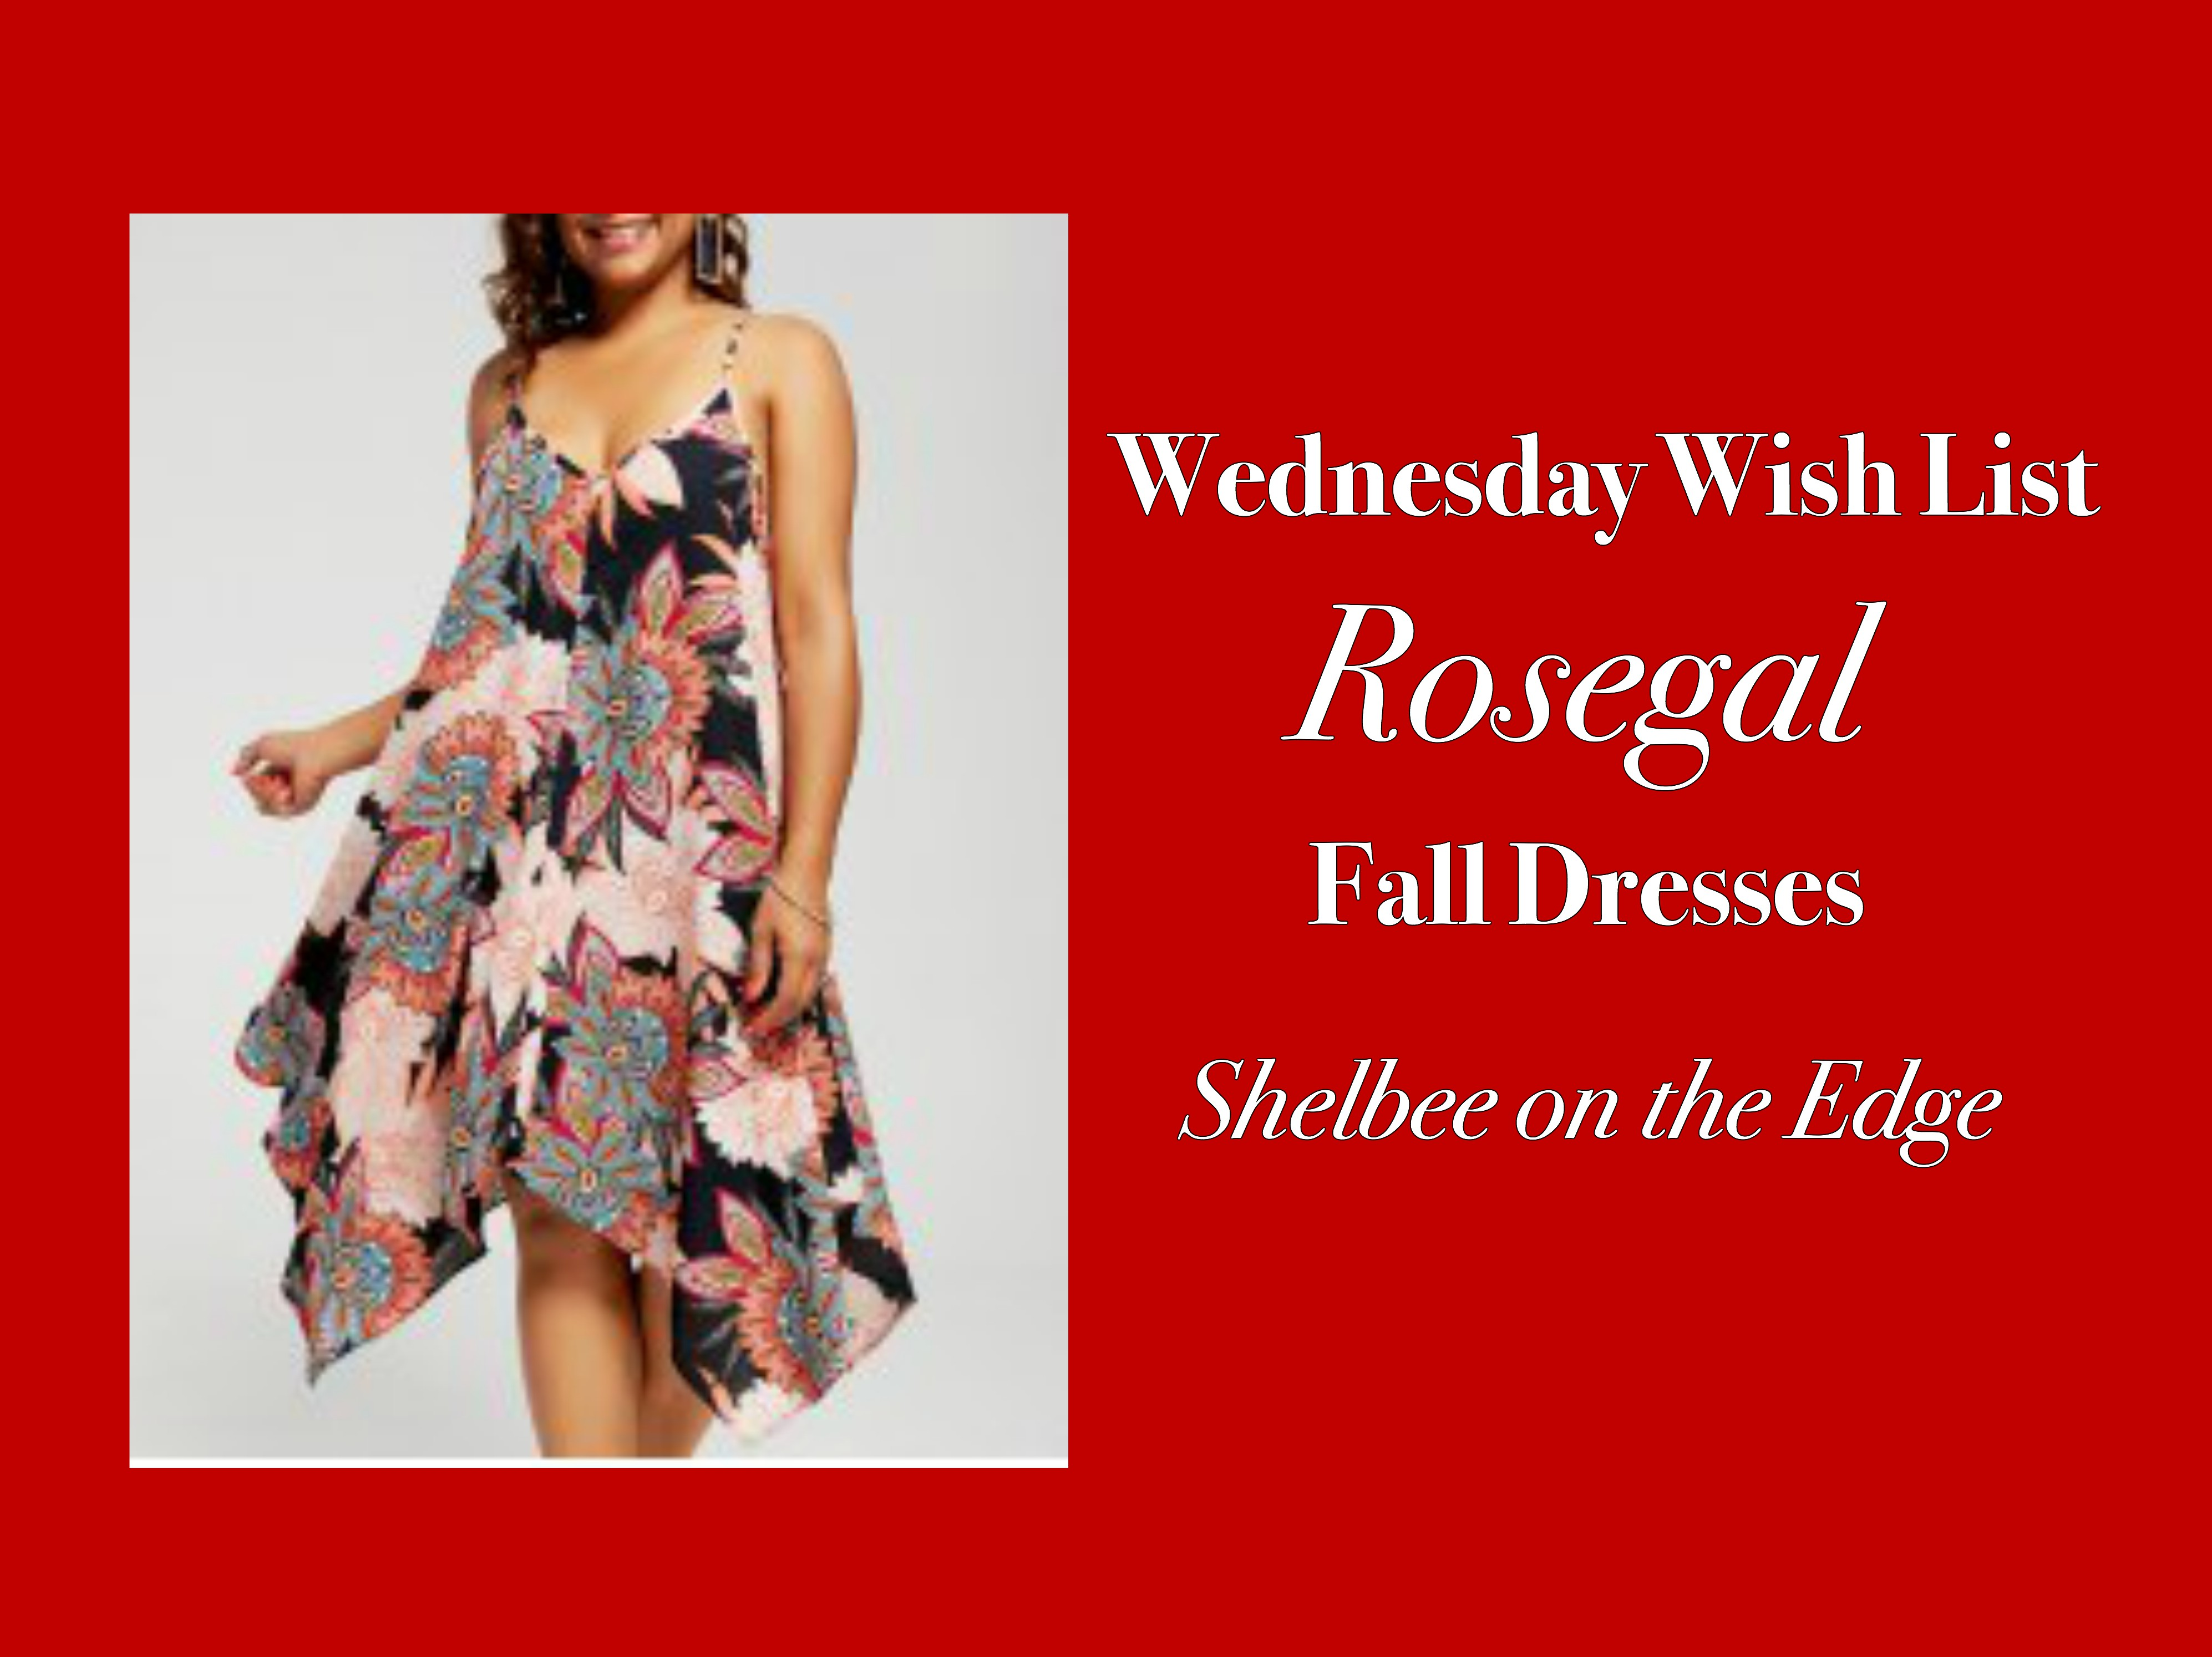 Wednesday Wish List: Rosegal Fall Dresses